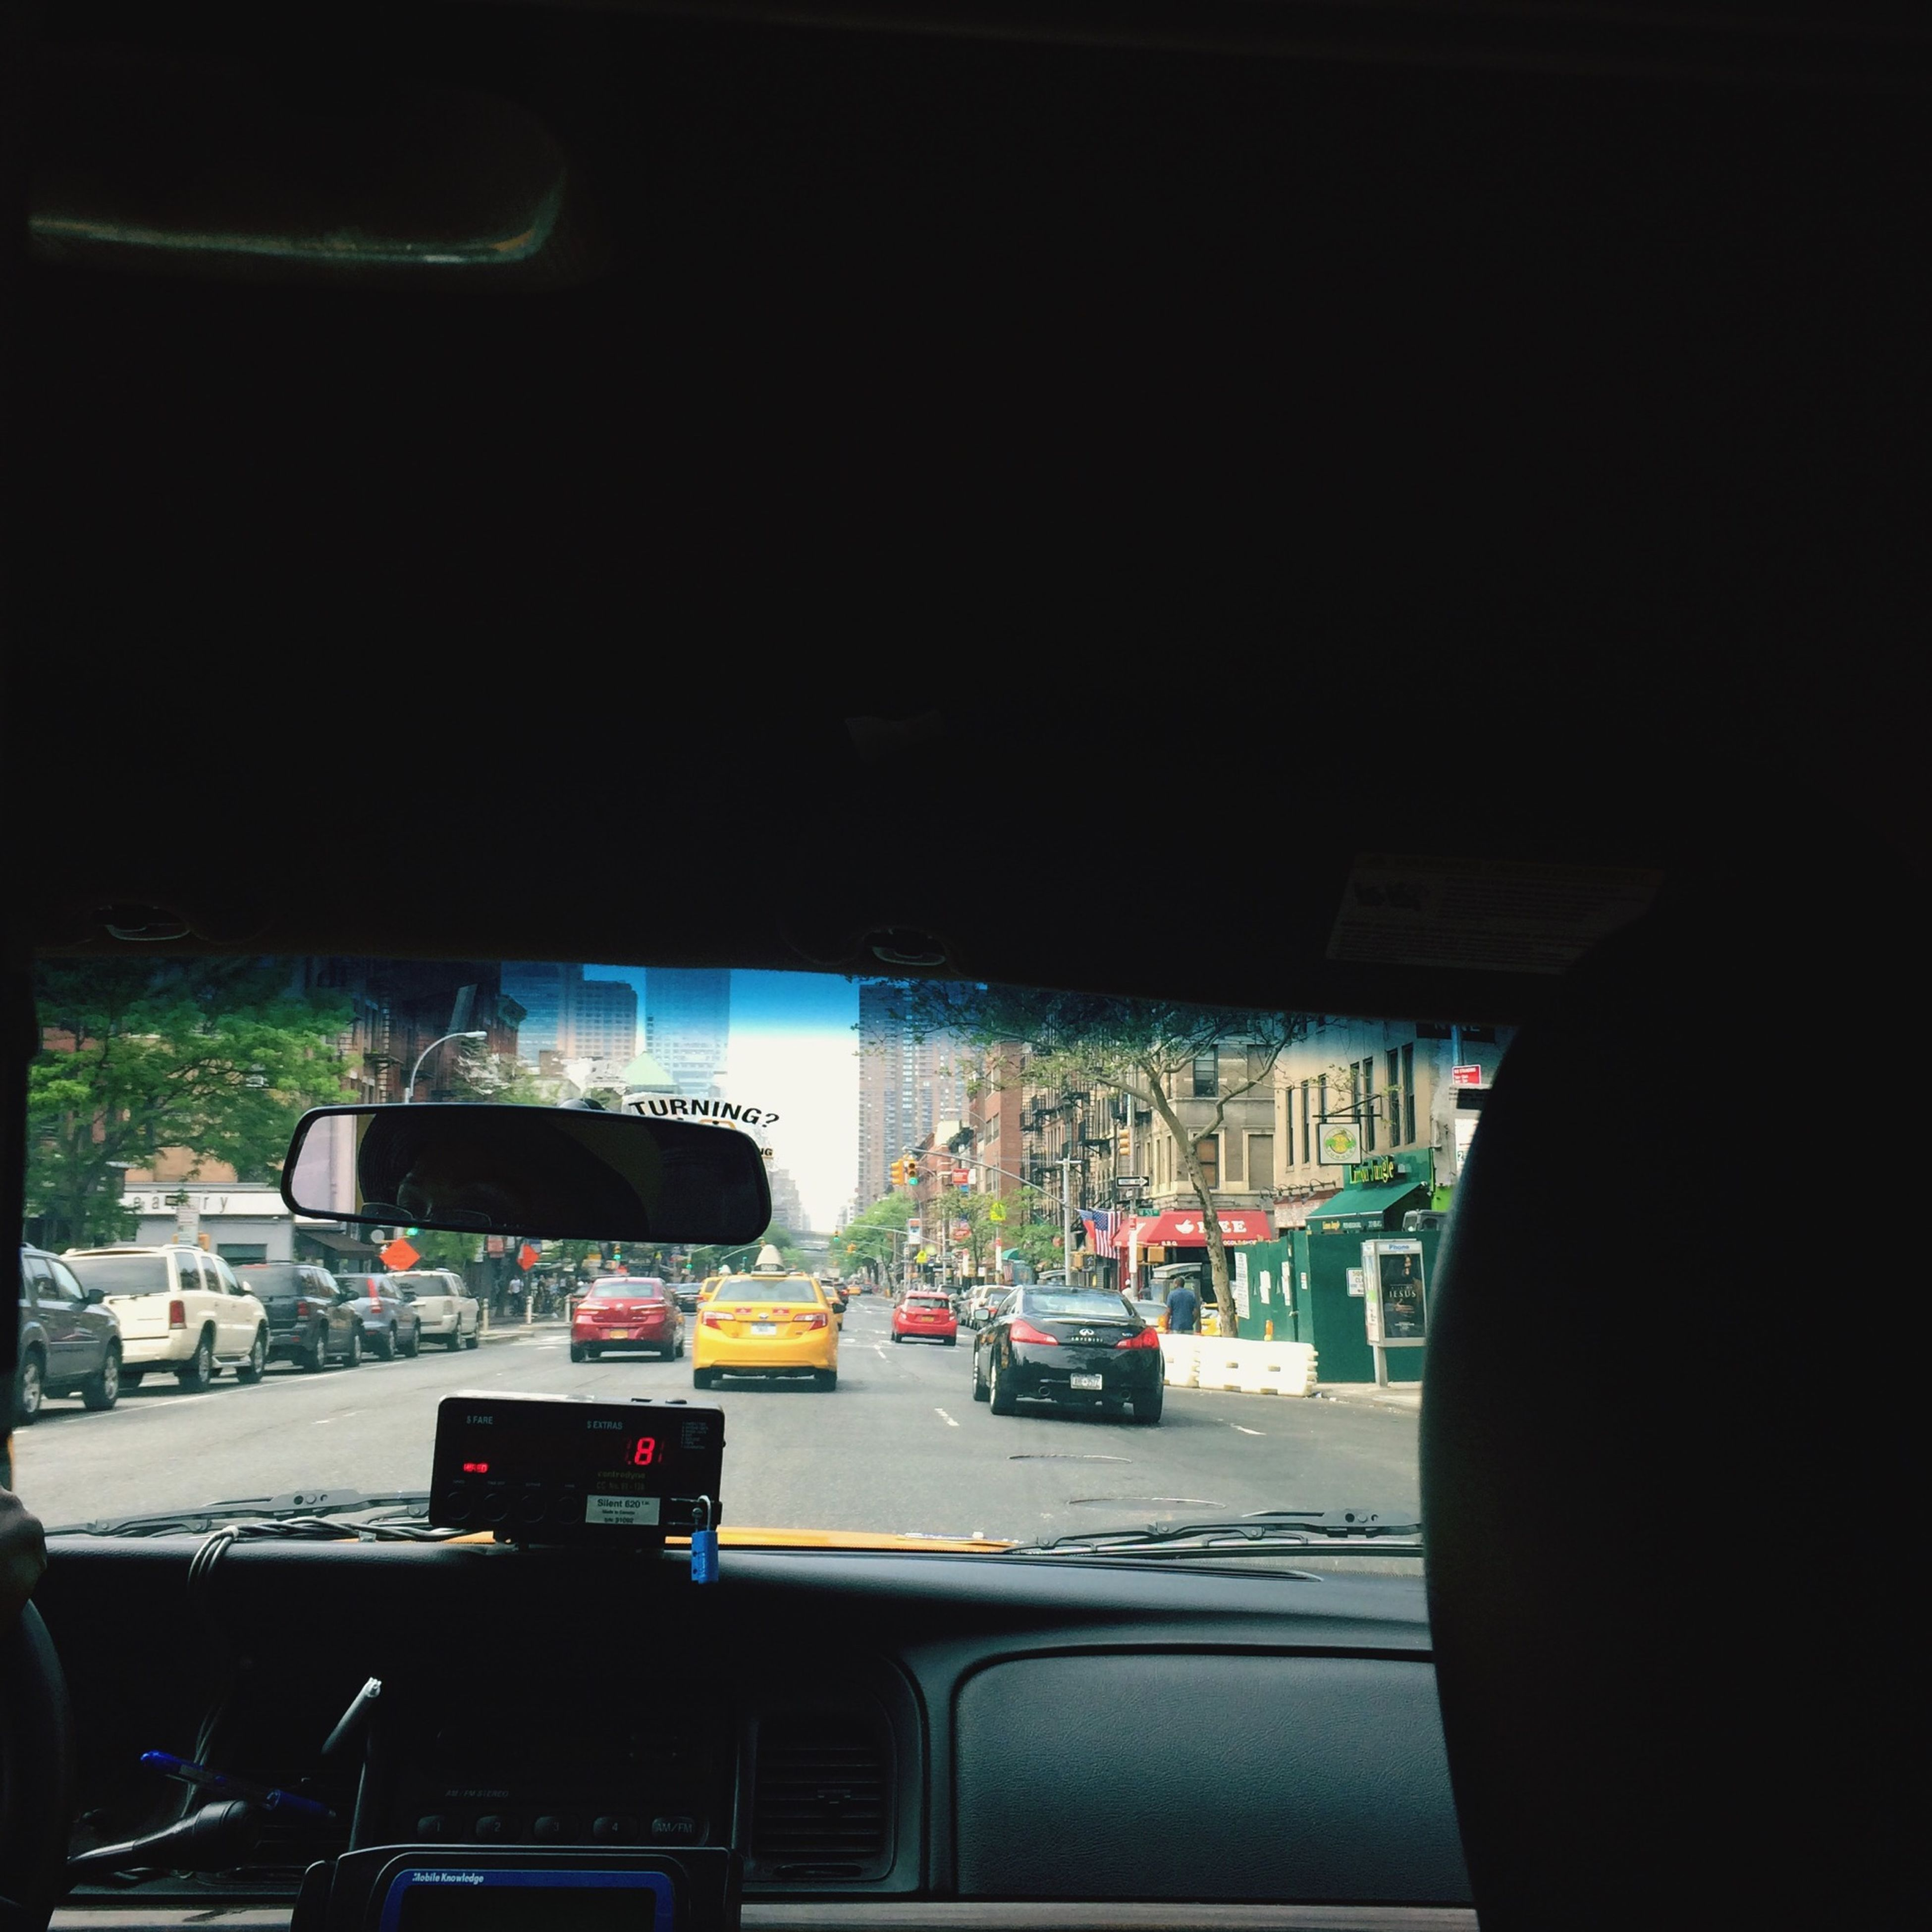 transportation, mode of transport, car, land vehicle, vehicle interior, street, travel, bus, traffic, road, city, vehicle, on the move, clear sky, window, stationary, city life, car interior, incidental people, journey